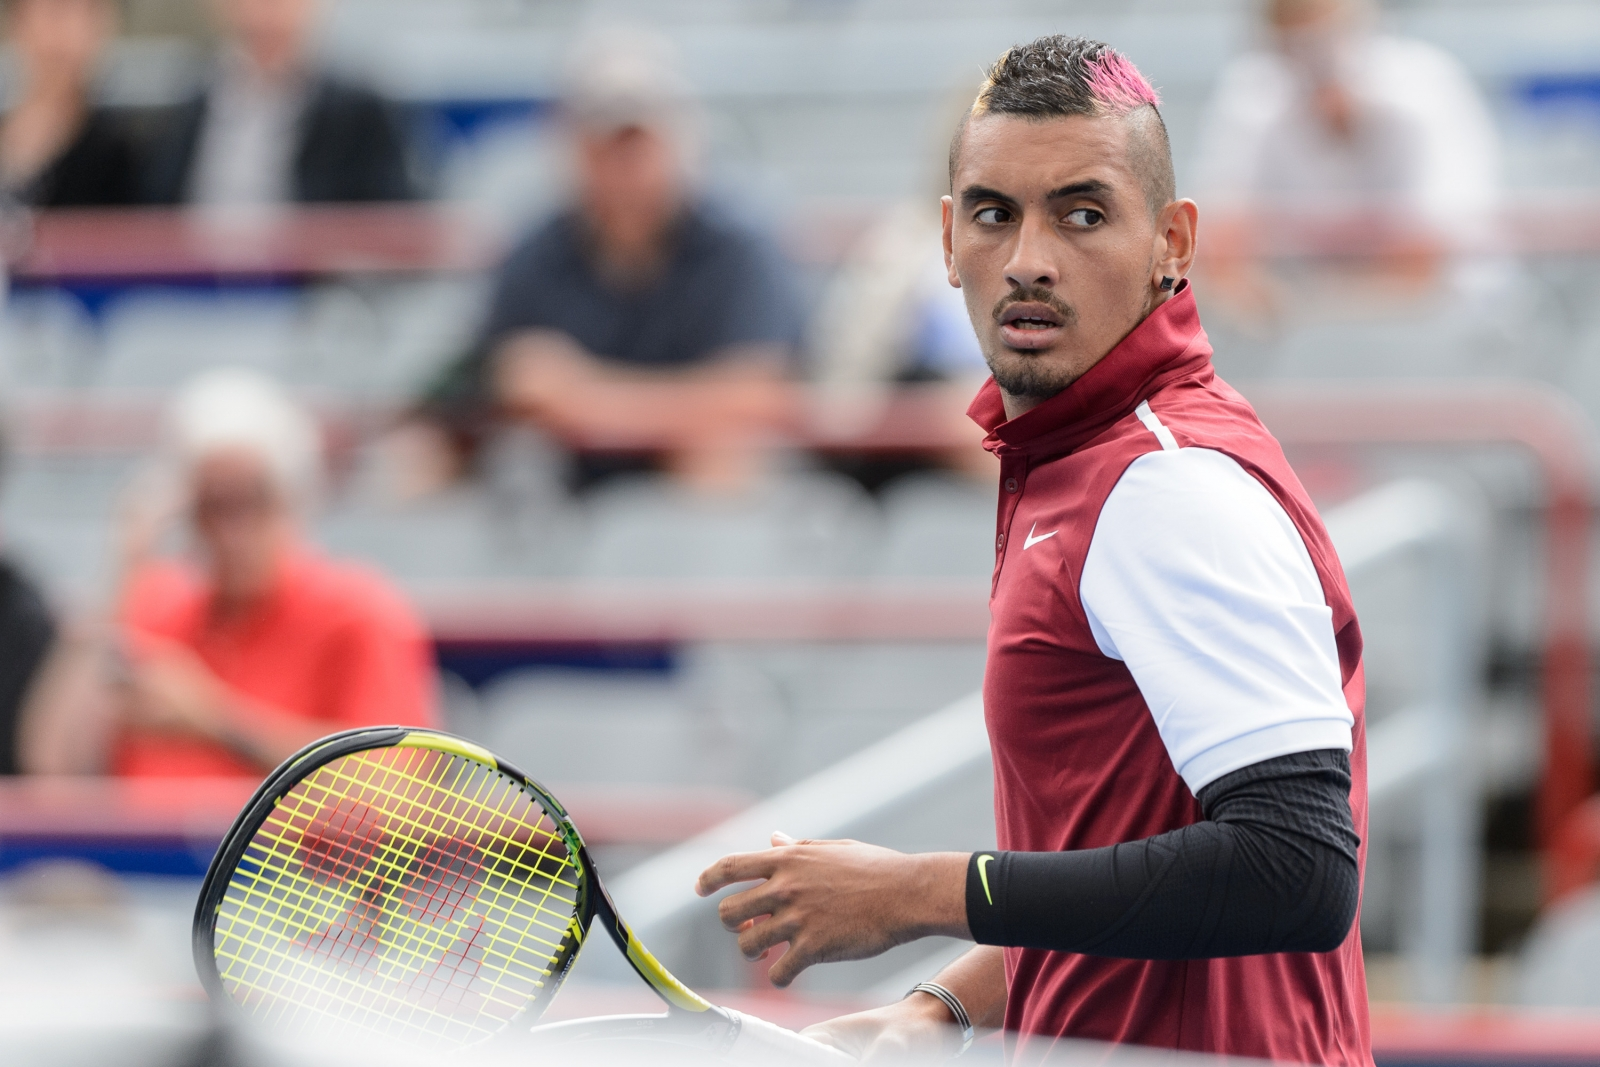 Nick Kyrgios fined and could face ATP suspension after Stan Wawrinka jibe